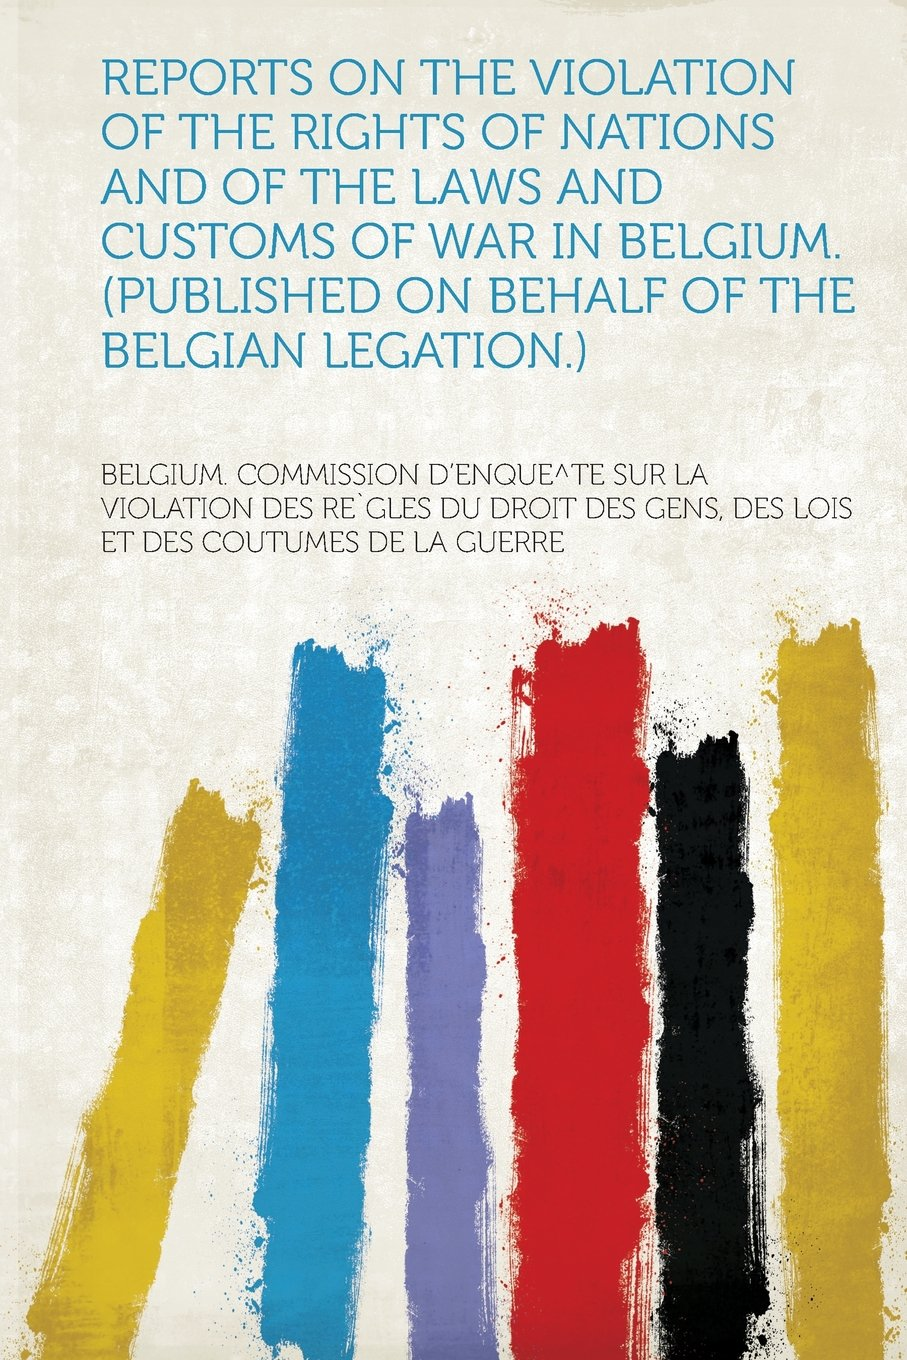 Download Reports on the Violation of the Rights of Nations and of the Laws and Customs of War in Belgium. (Published on Behalf of the Belgian Legation.) pdf epub